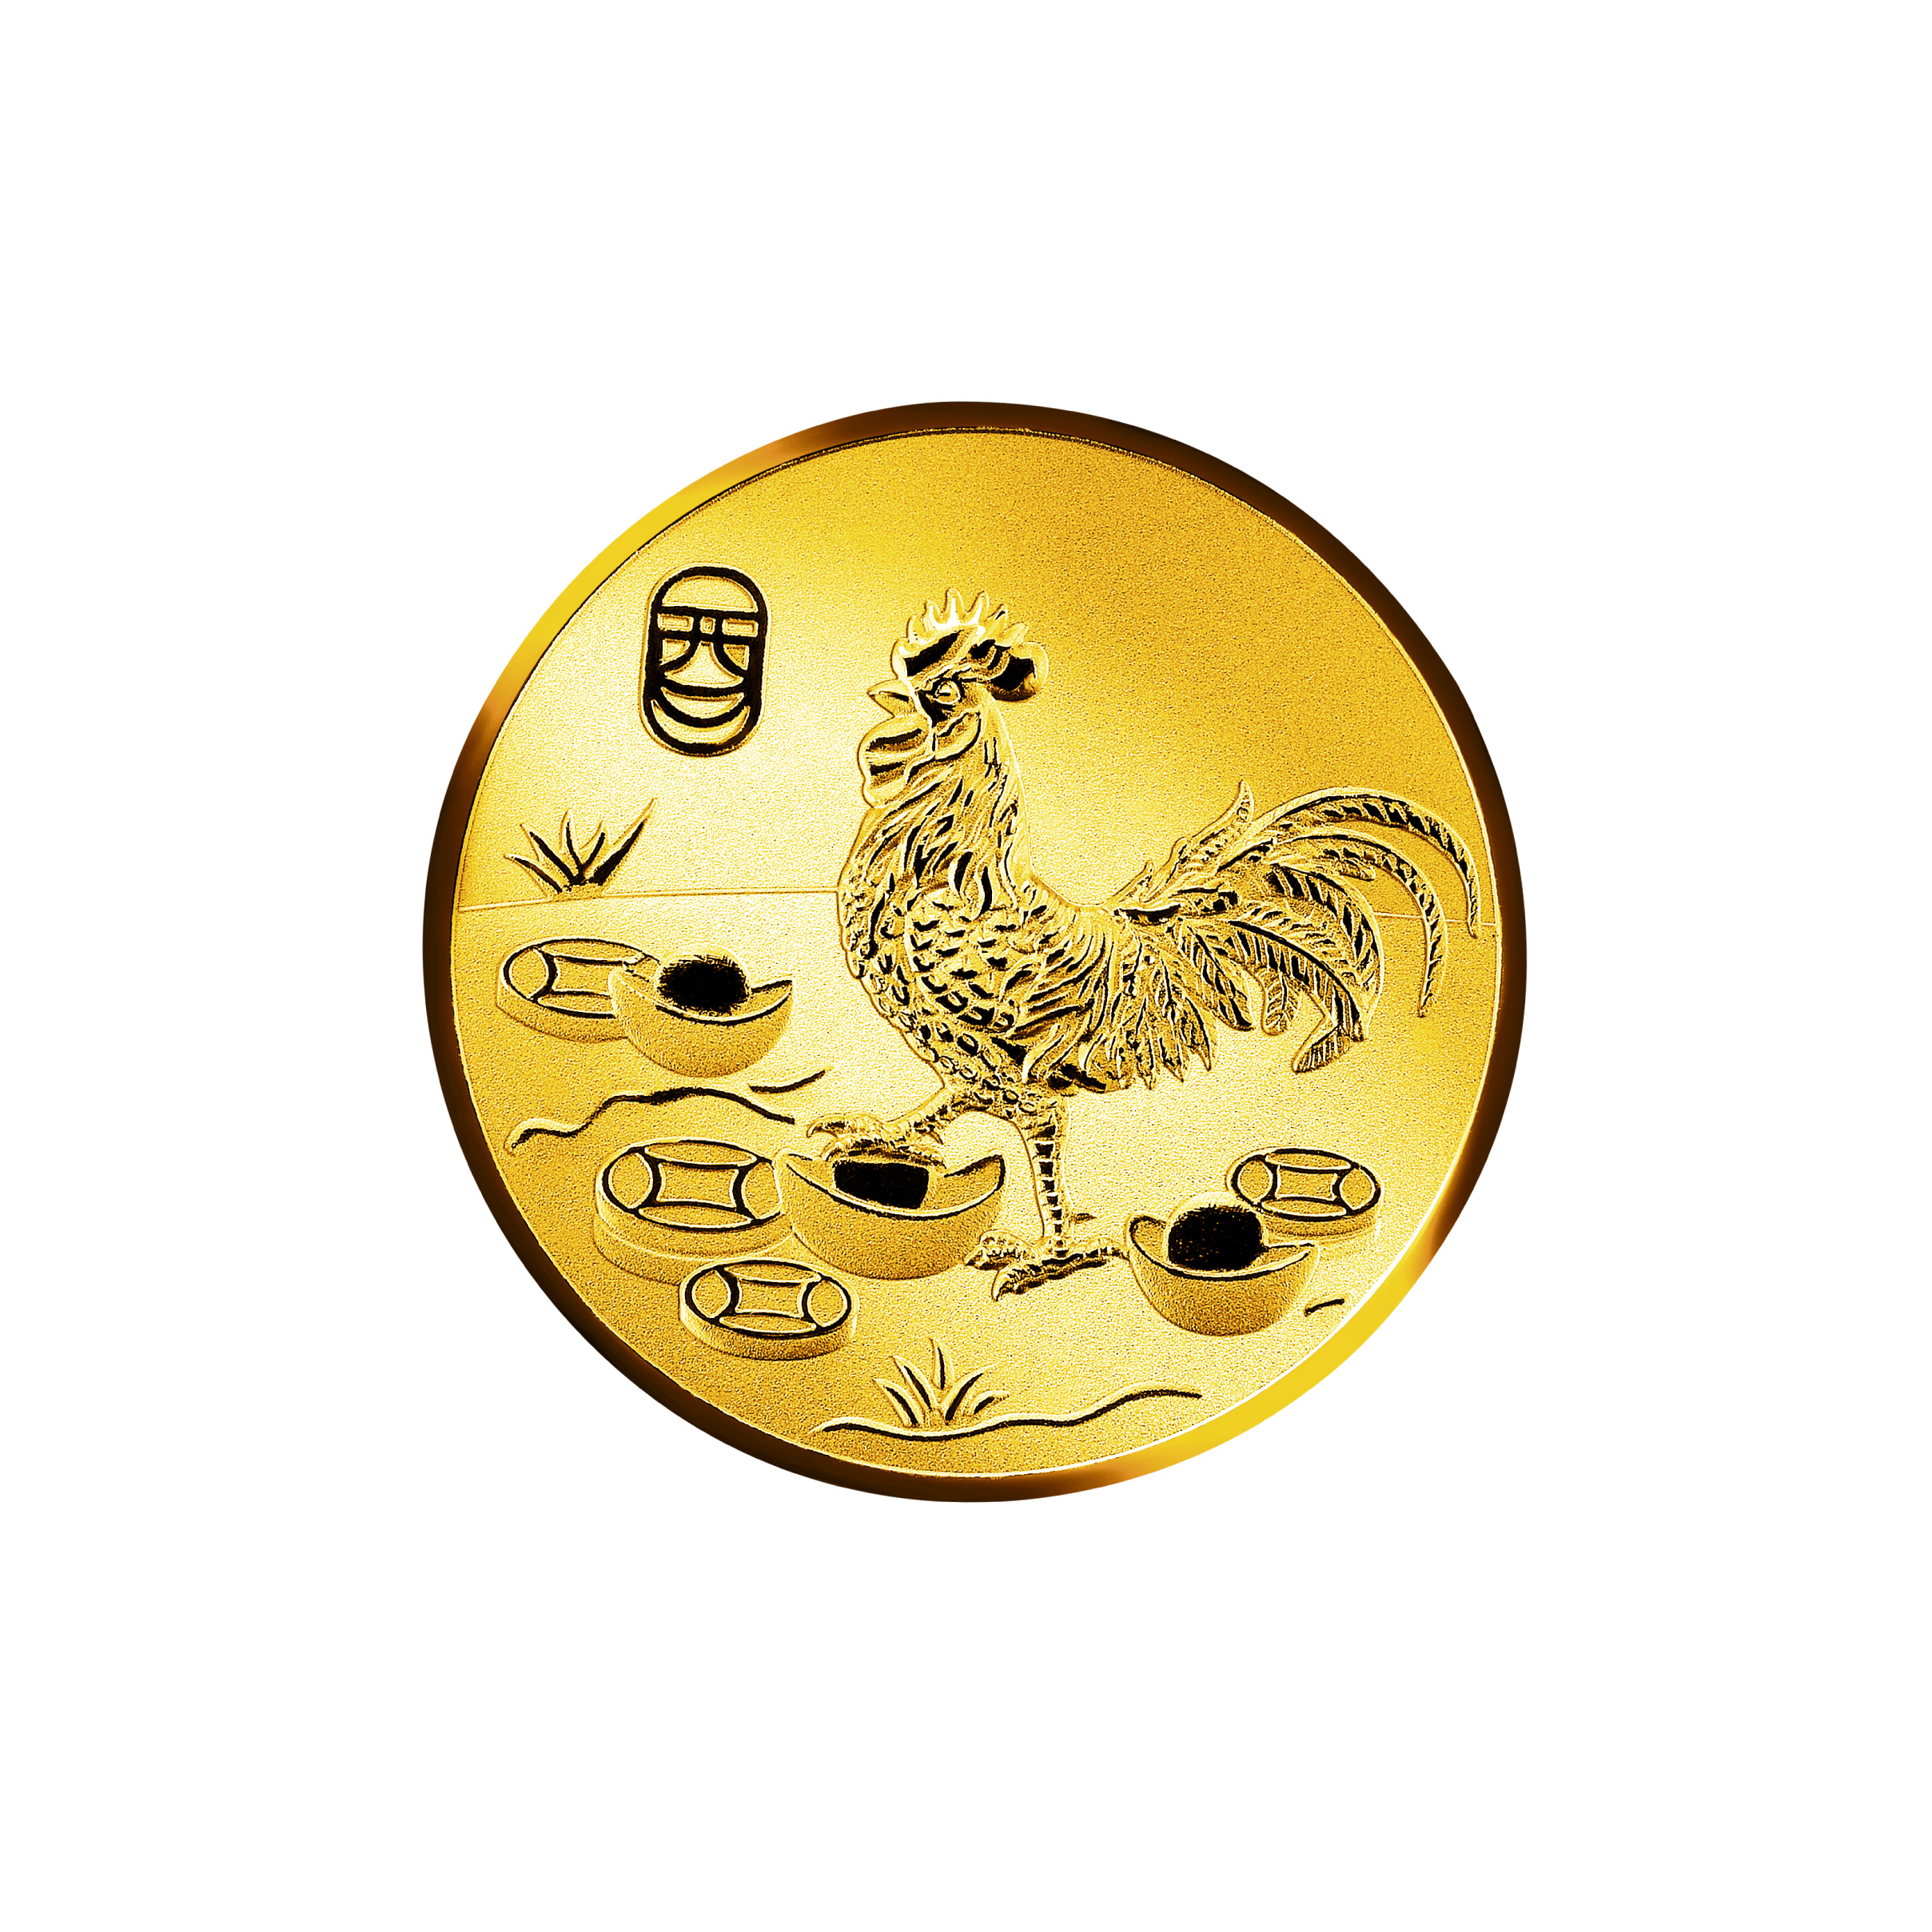 Gold Coin for the year of the Rooster